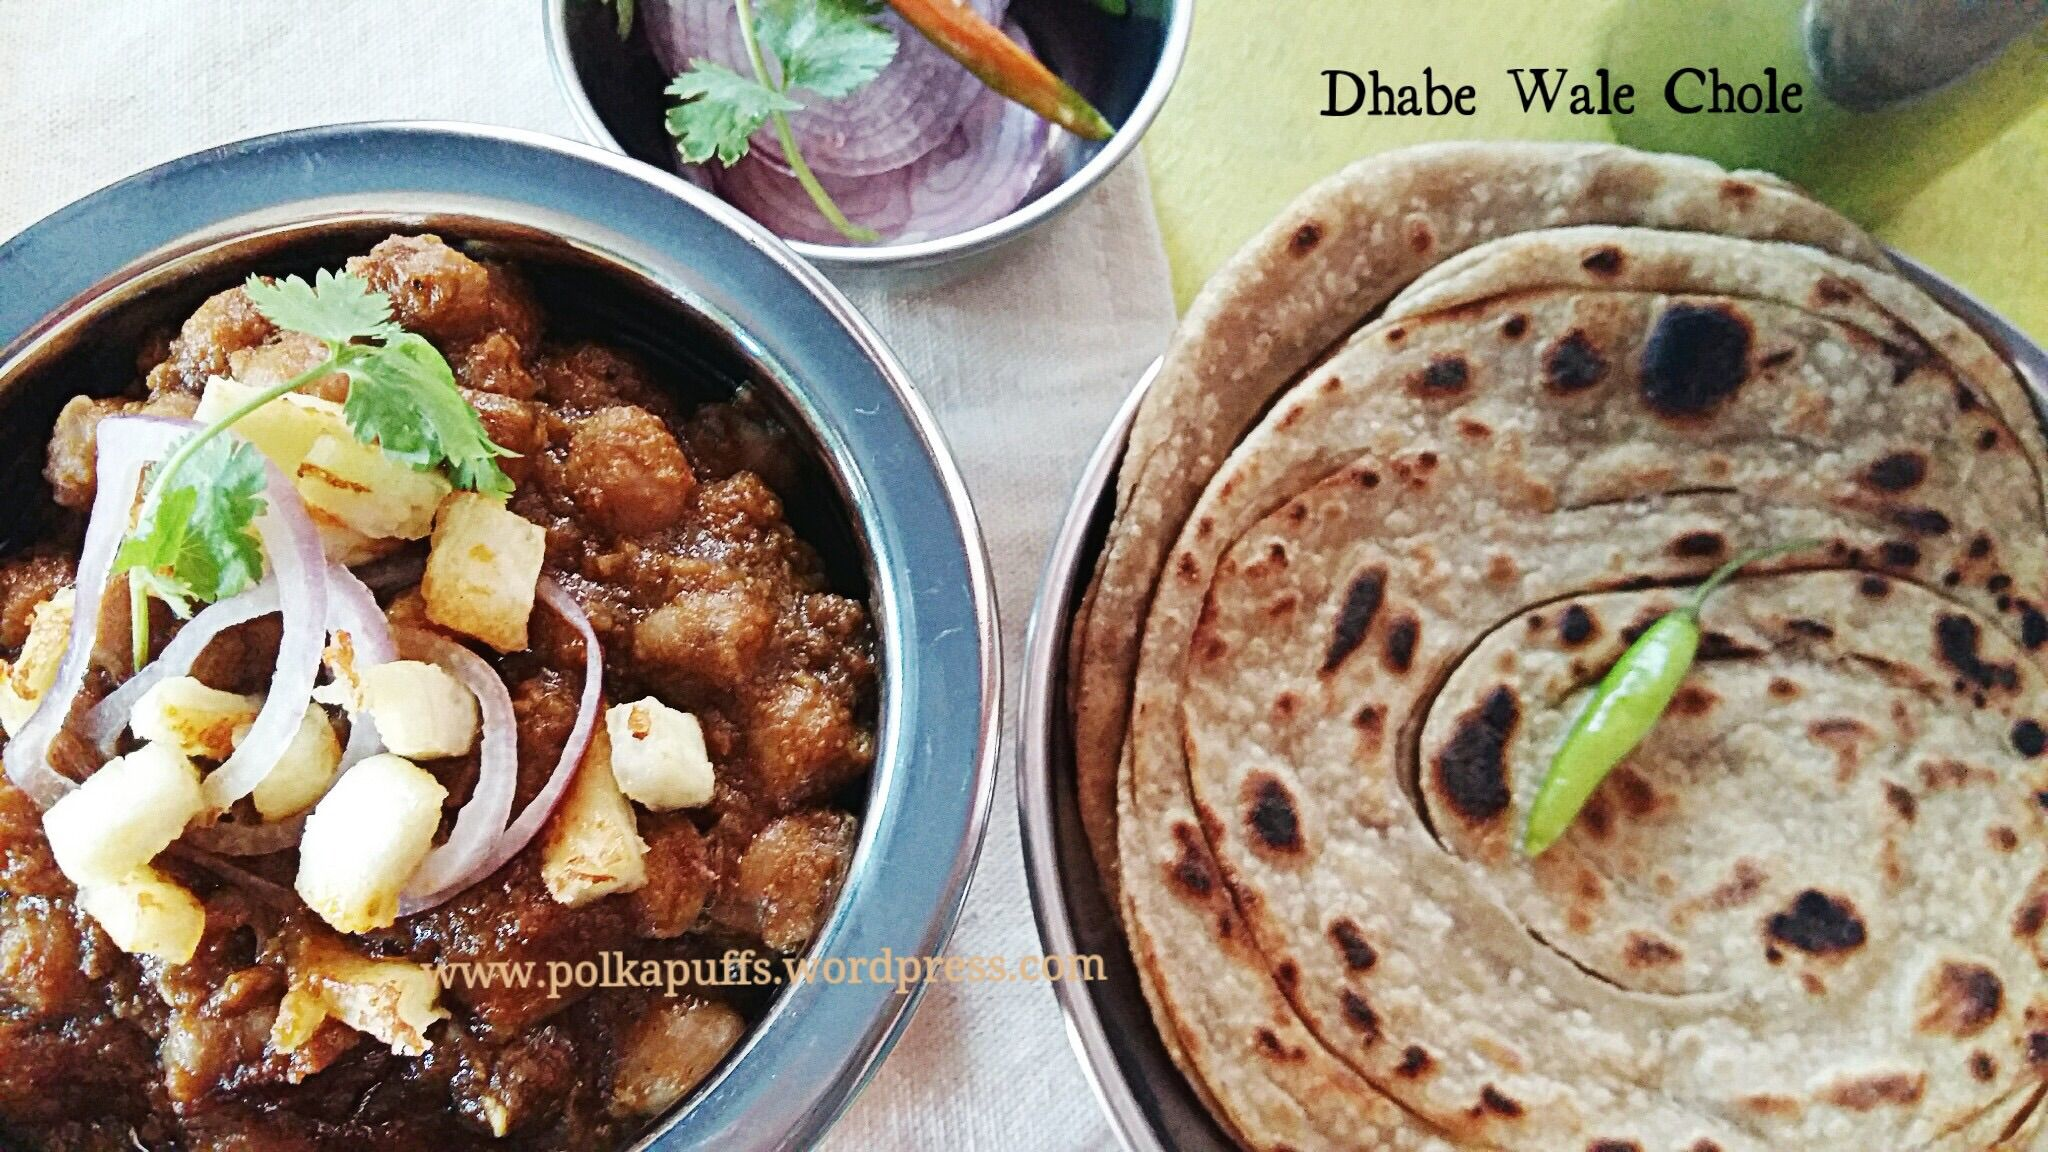 Dhabe wale chole chickpeas in a spicy indian curry chana masala dhabe wale chole chickpeas in a spicy indian curry chana masala recipe forumfinder Gallery